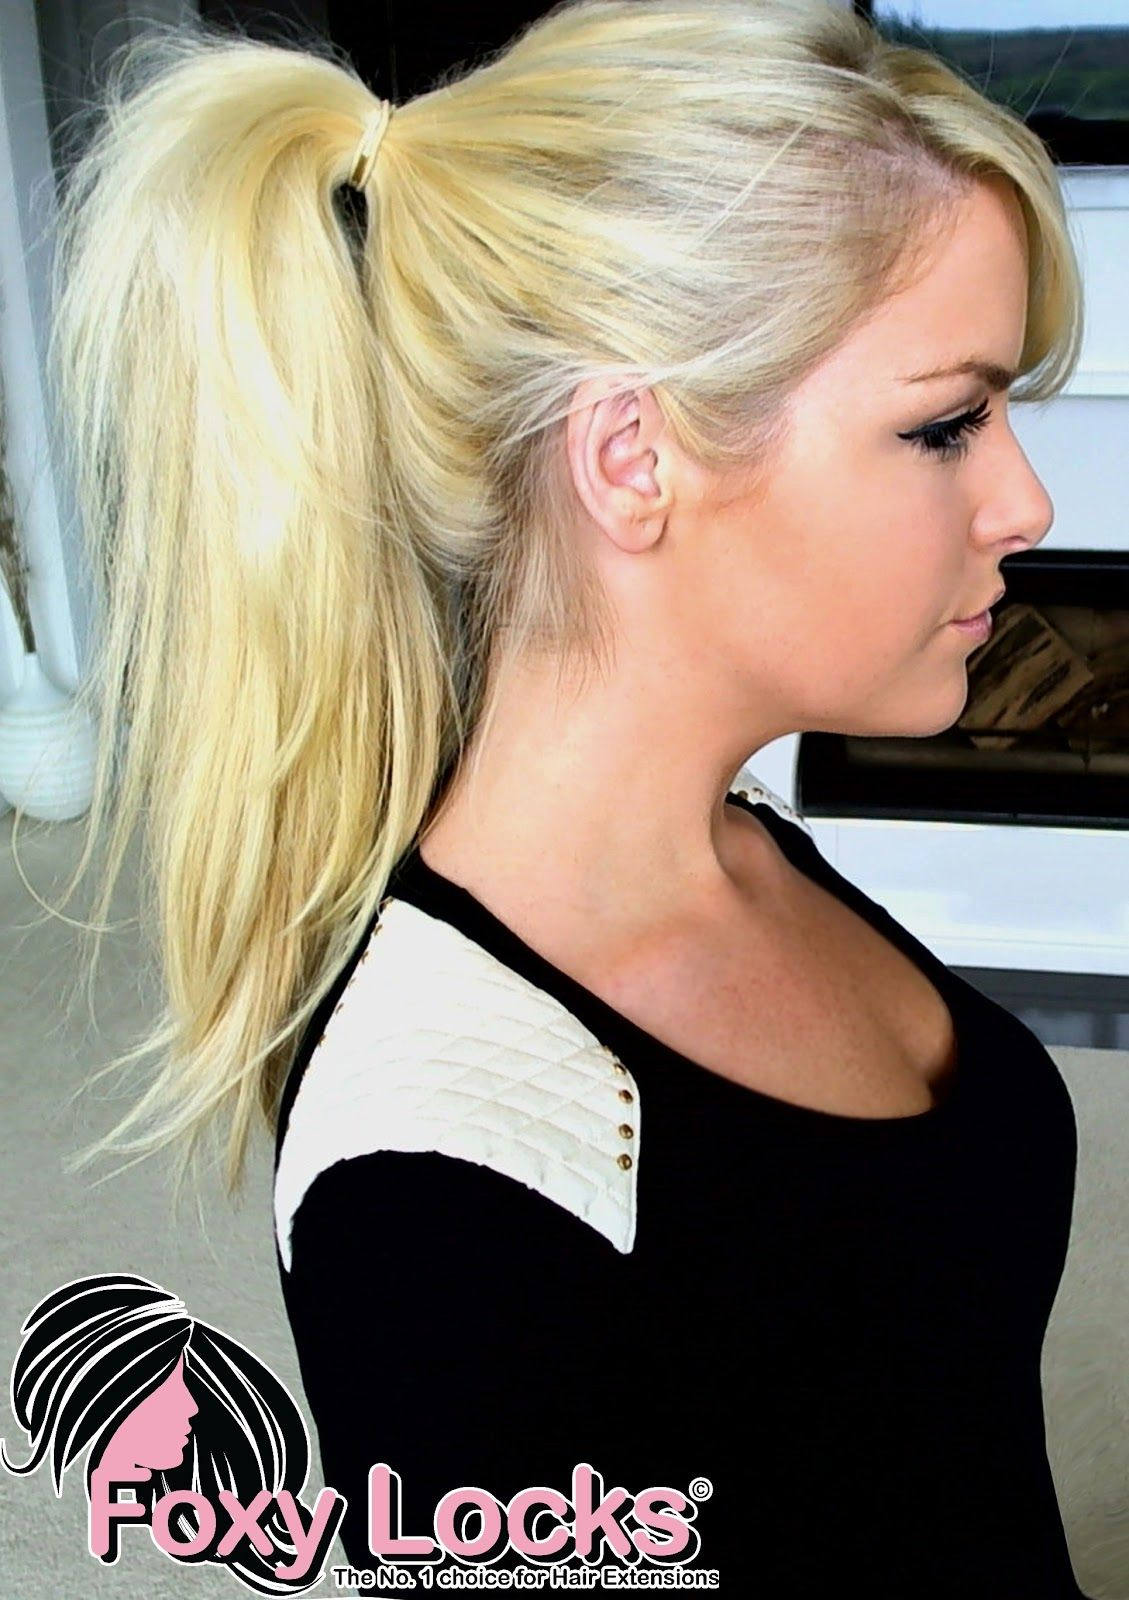 Imogen Foxy Locks How To Put Your Hair Up Ponytail Using Clip In